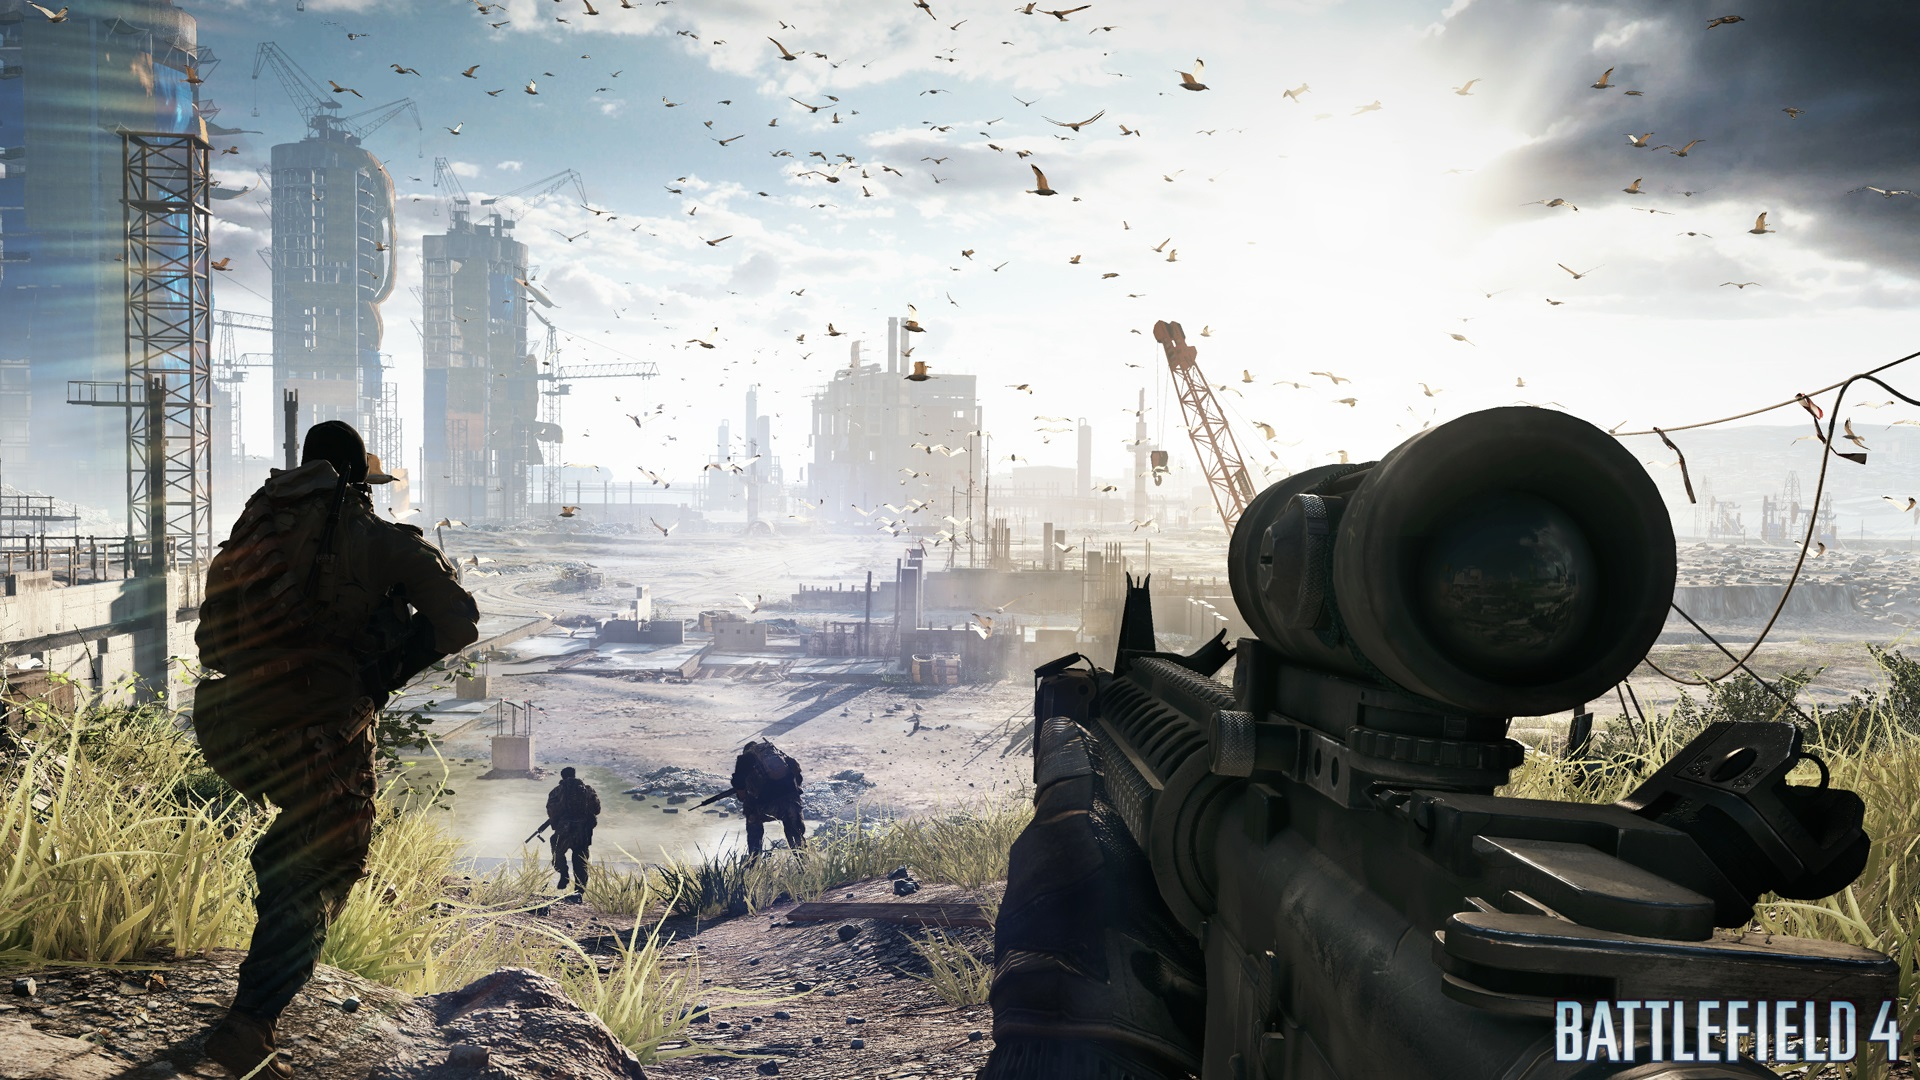 New Battlefield 4 Details Leaked From Promo Poster?